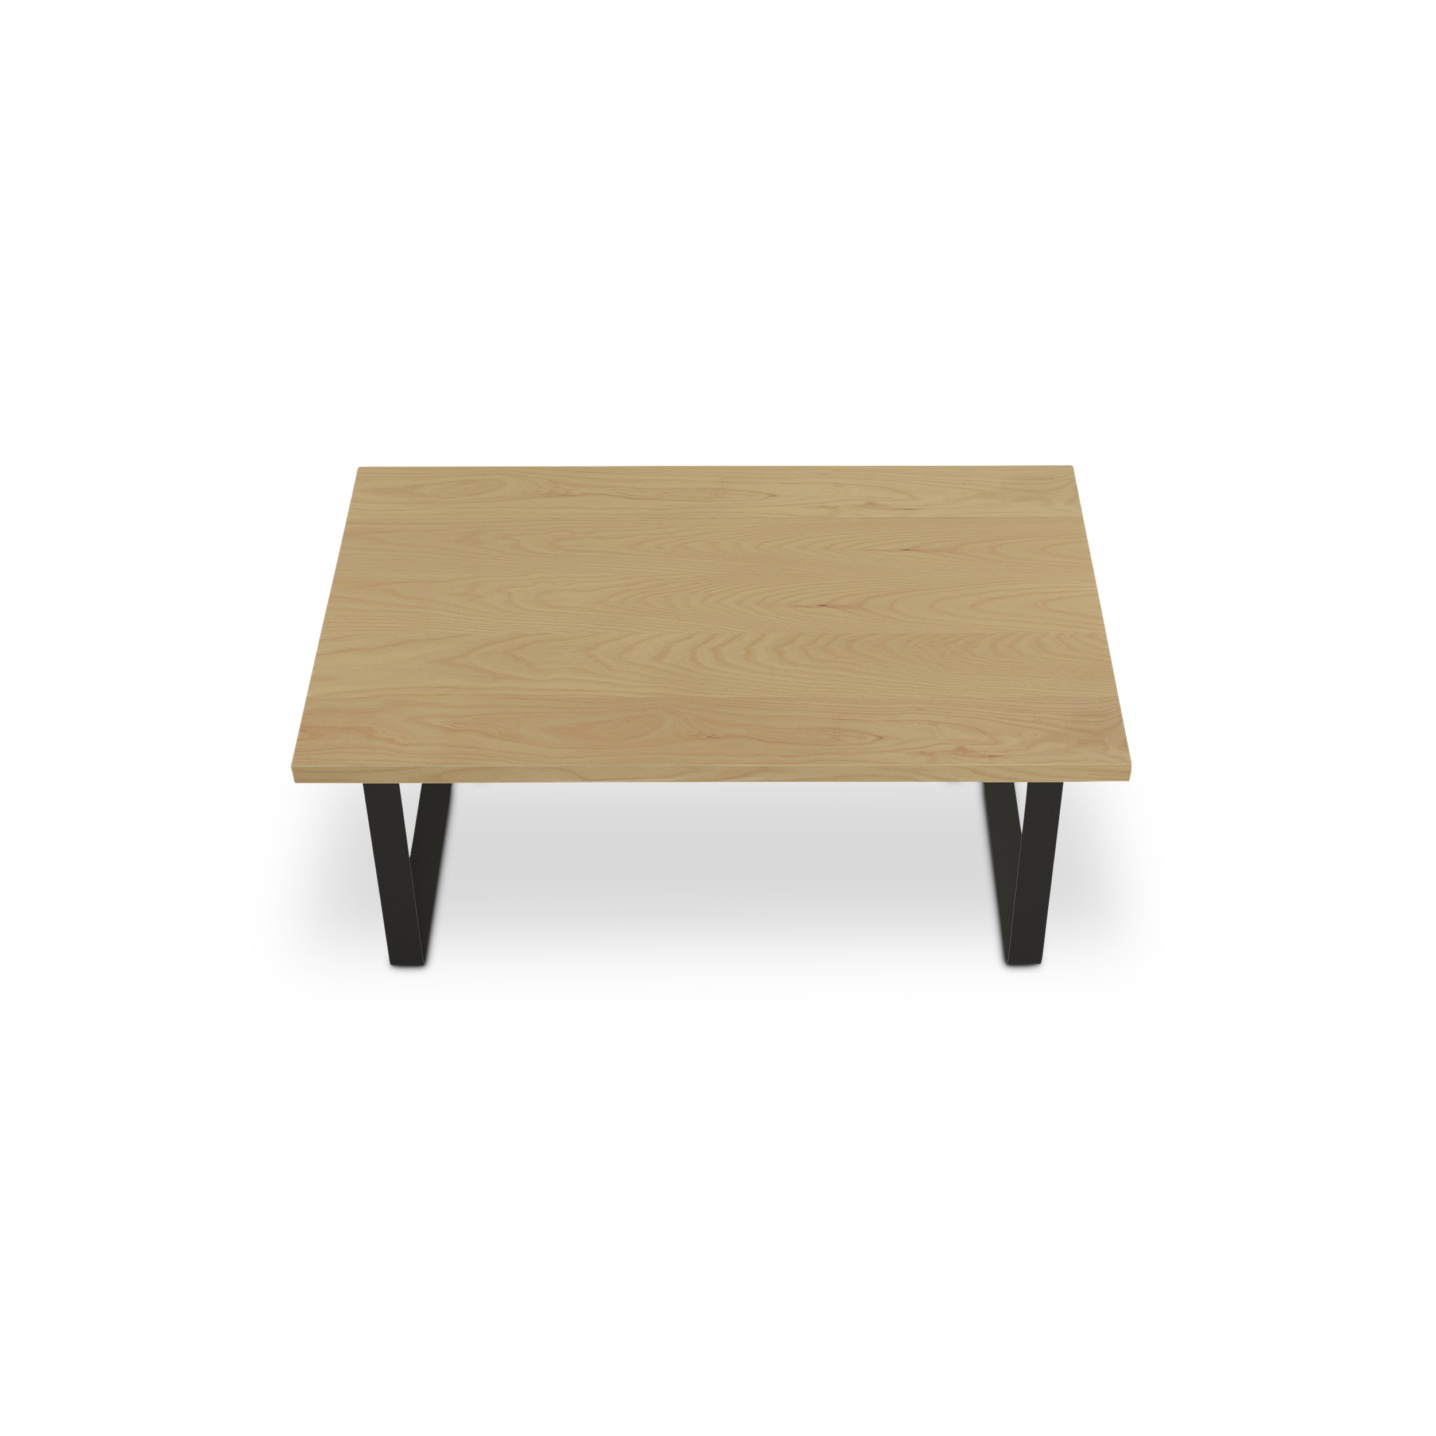 Ash top on a dining table